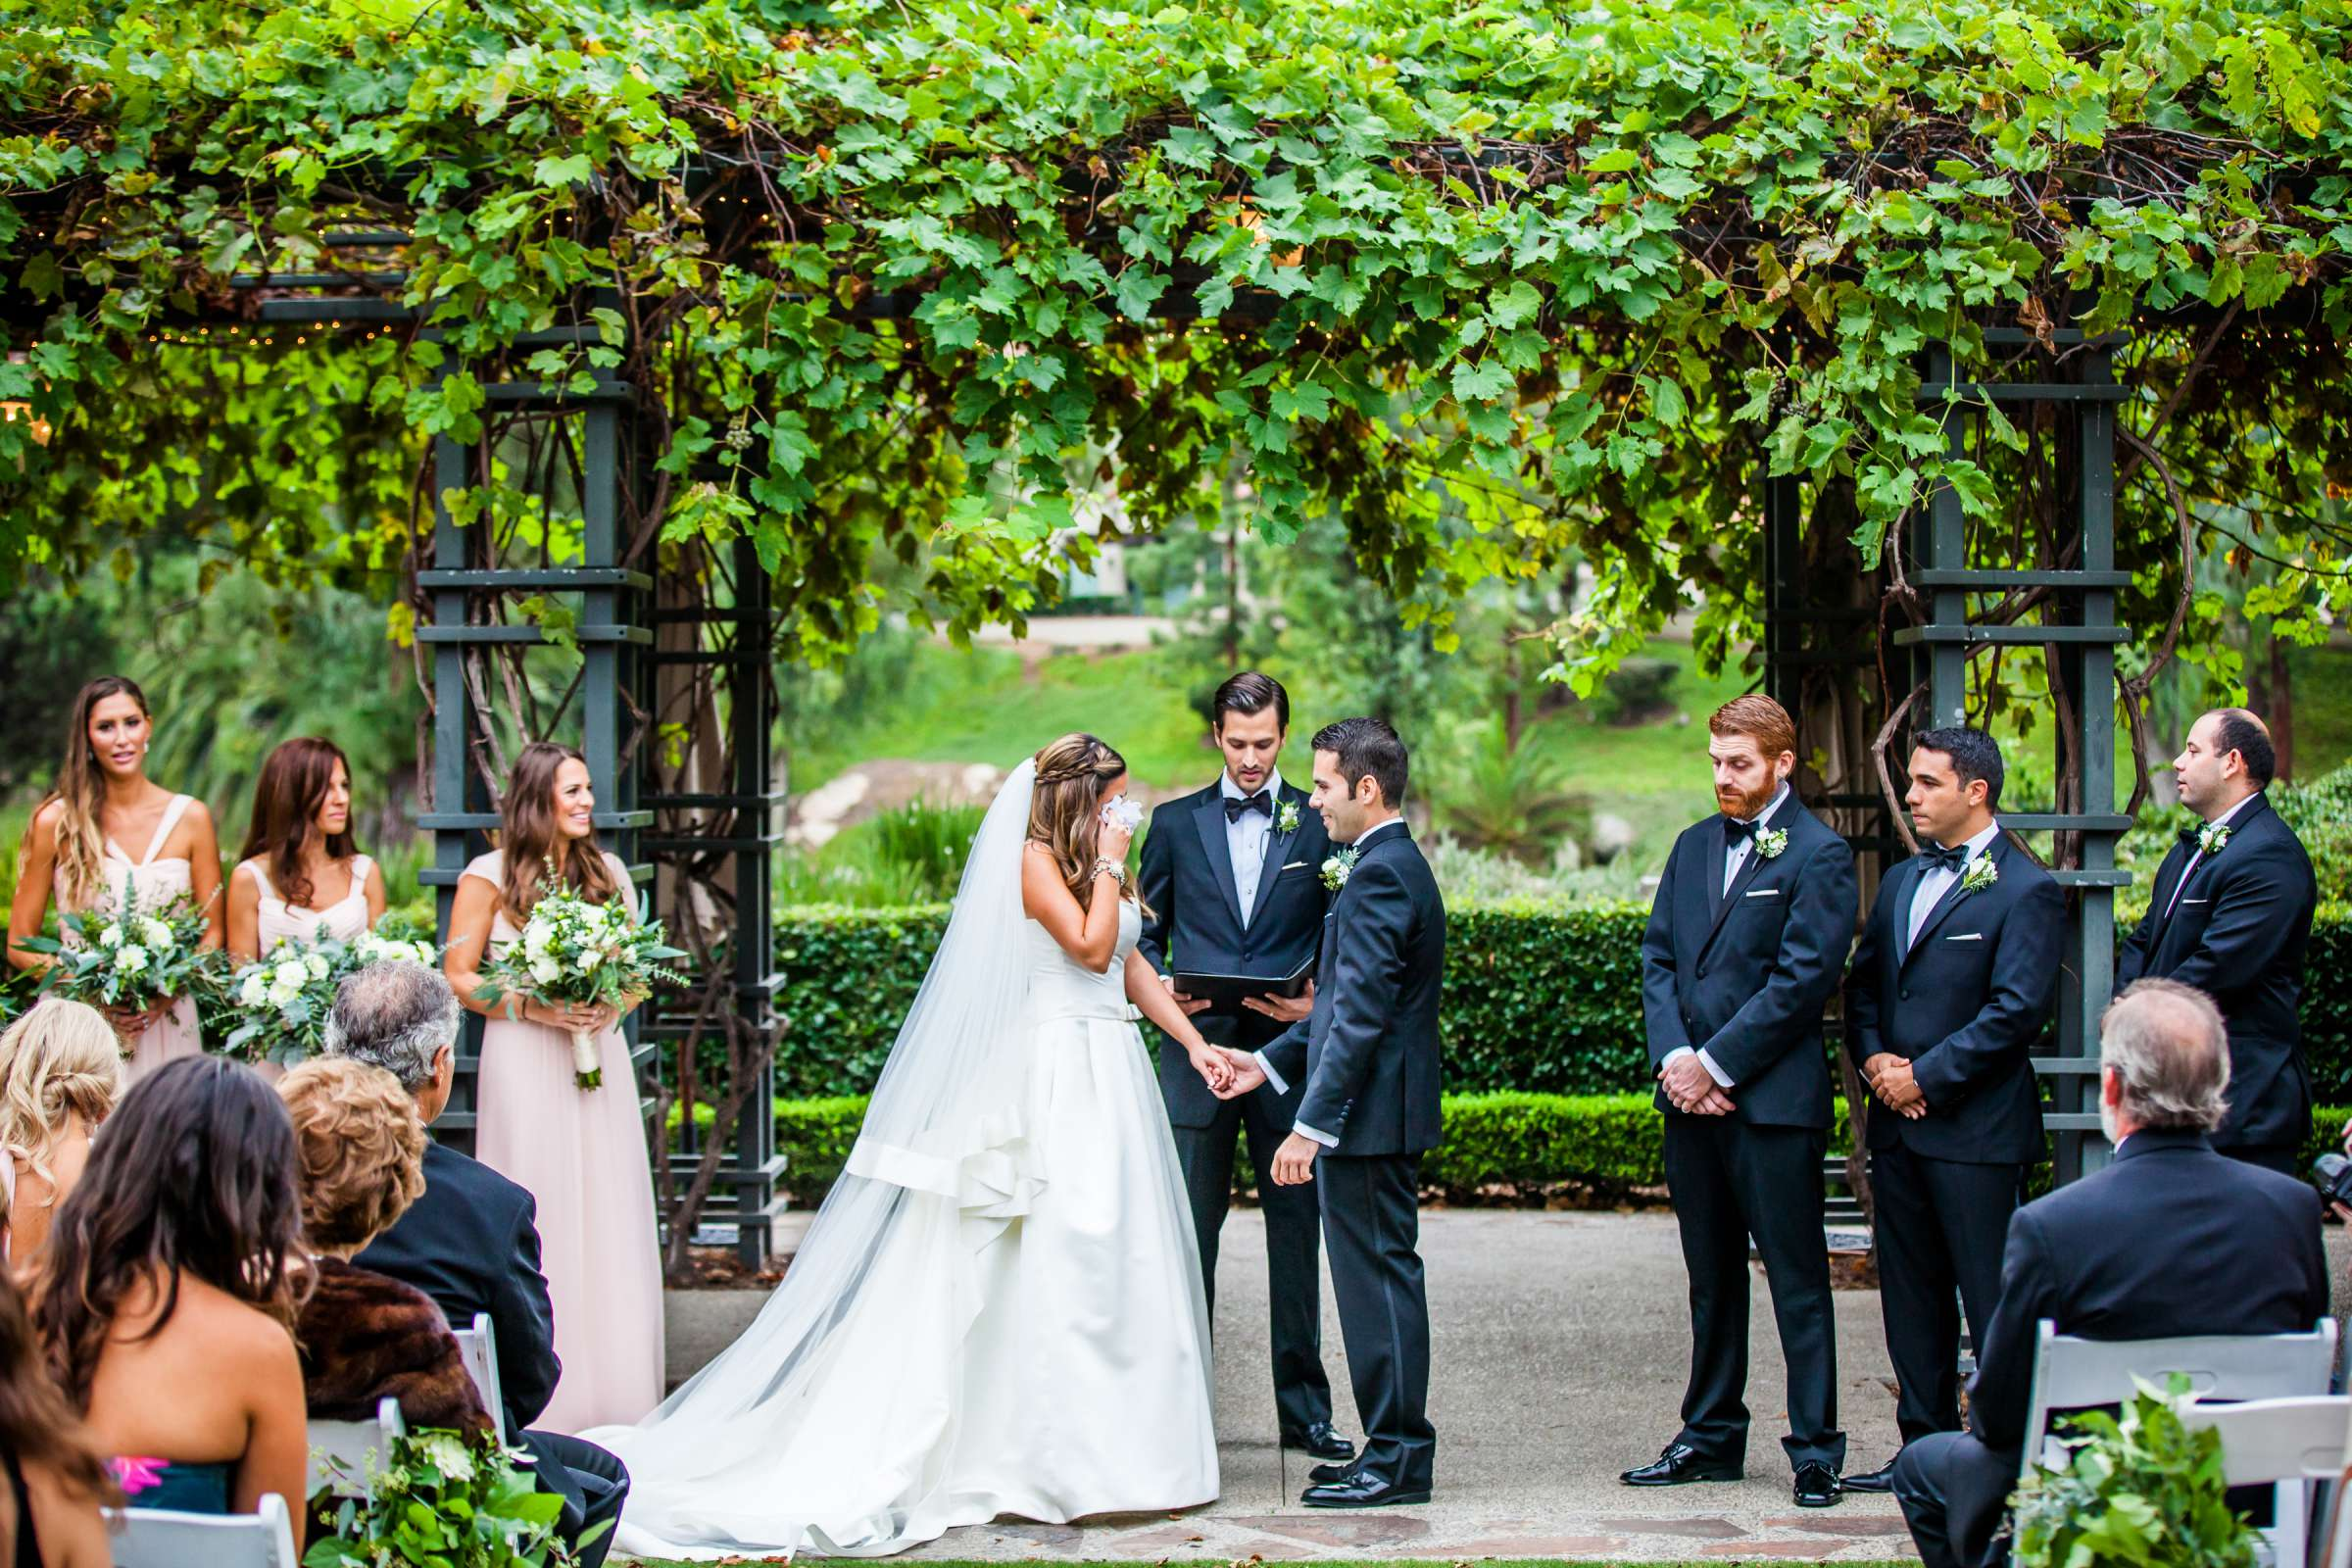 Rancho Bernardo Inn Wedding coordinated by Très Chic Events, Stefania and Nicholas Wedding Photo #40 by True Photography